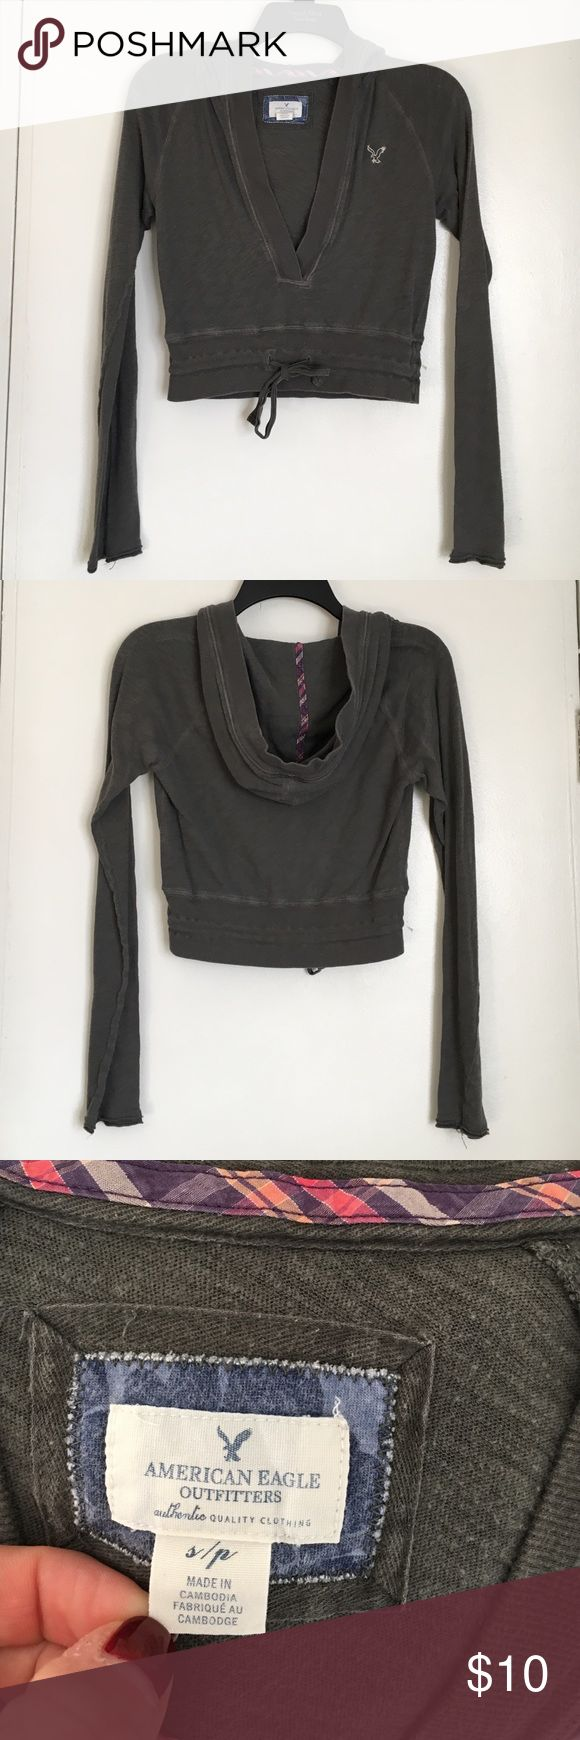 American Eagle Cropped Hooded Shirt Gray American Eagle long sleeved cropped hooded top. In good condition American Eagle Outfitters Tops Sweatshirts & Hoodies